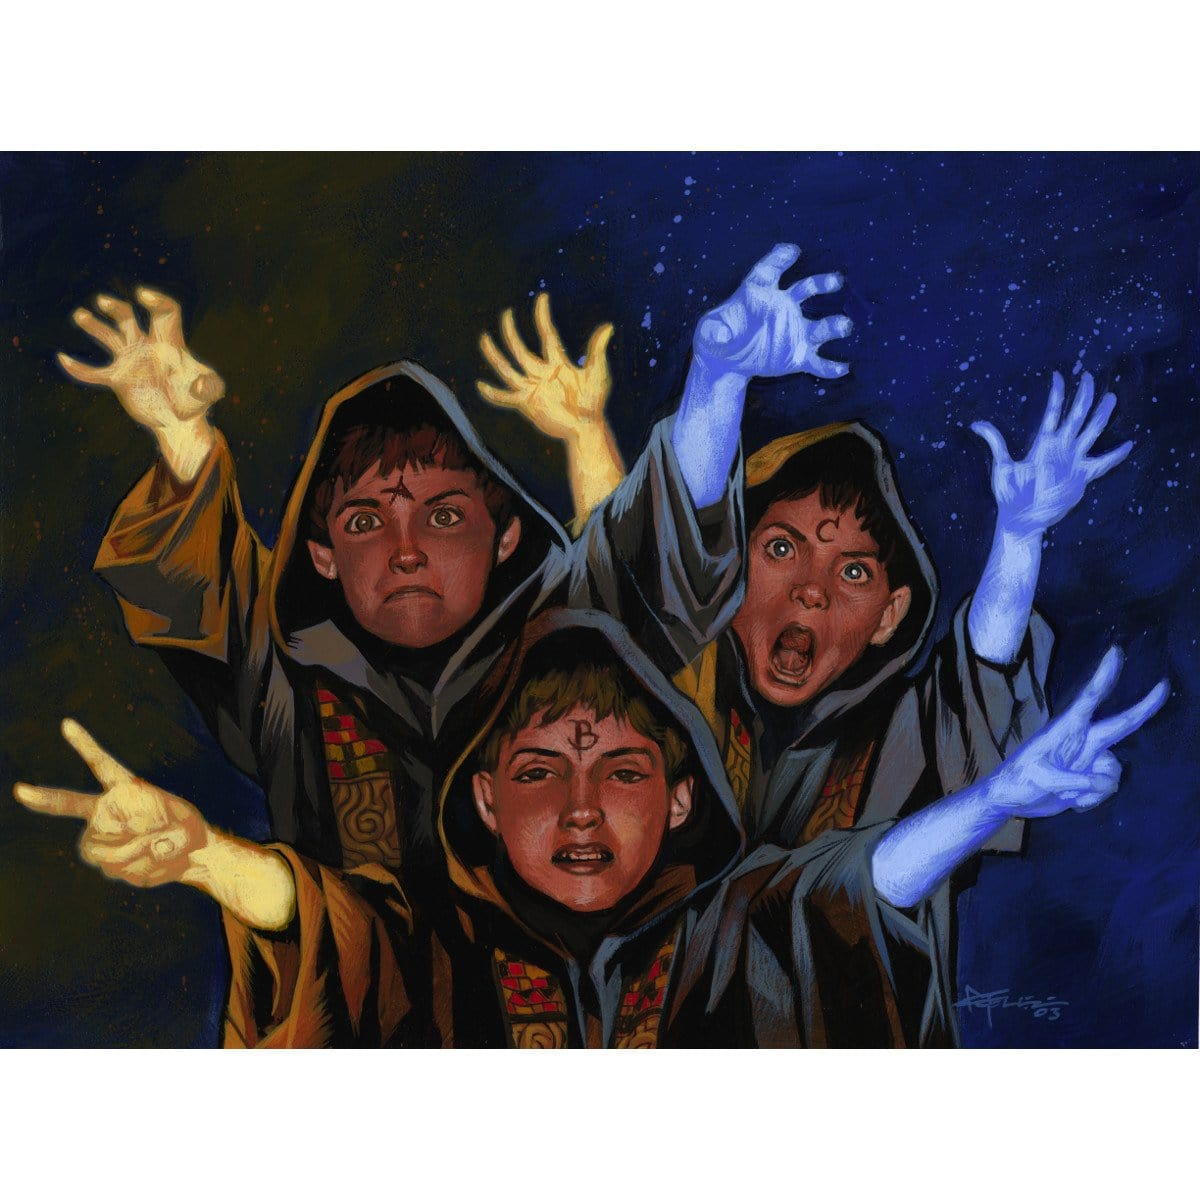 Meddling Kids Print - Print - Original Magic Art - Accessories for Magic the Gathering and other card games